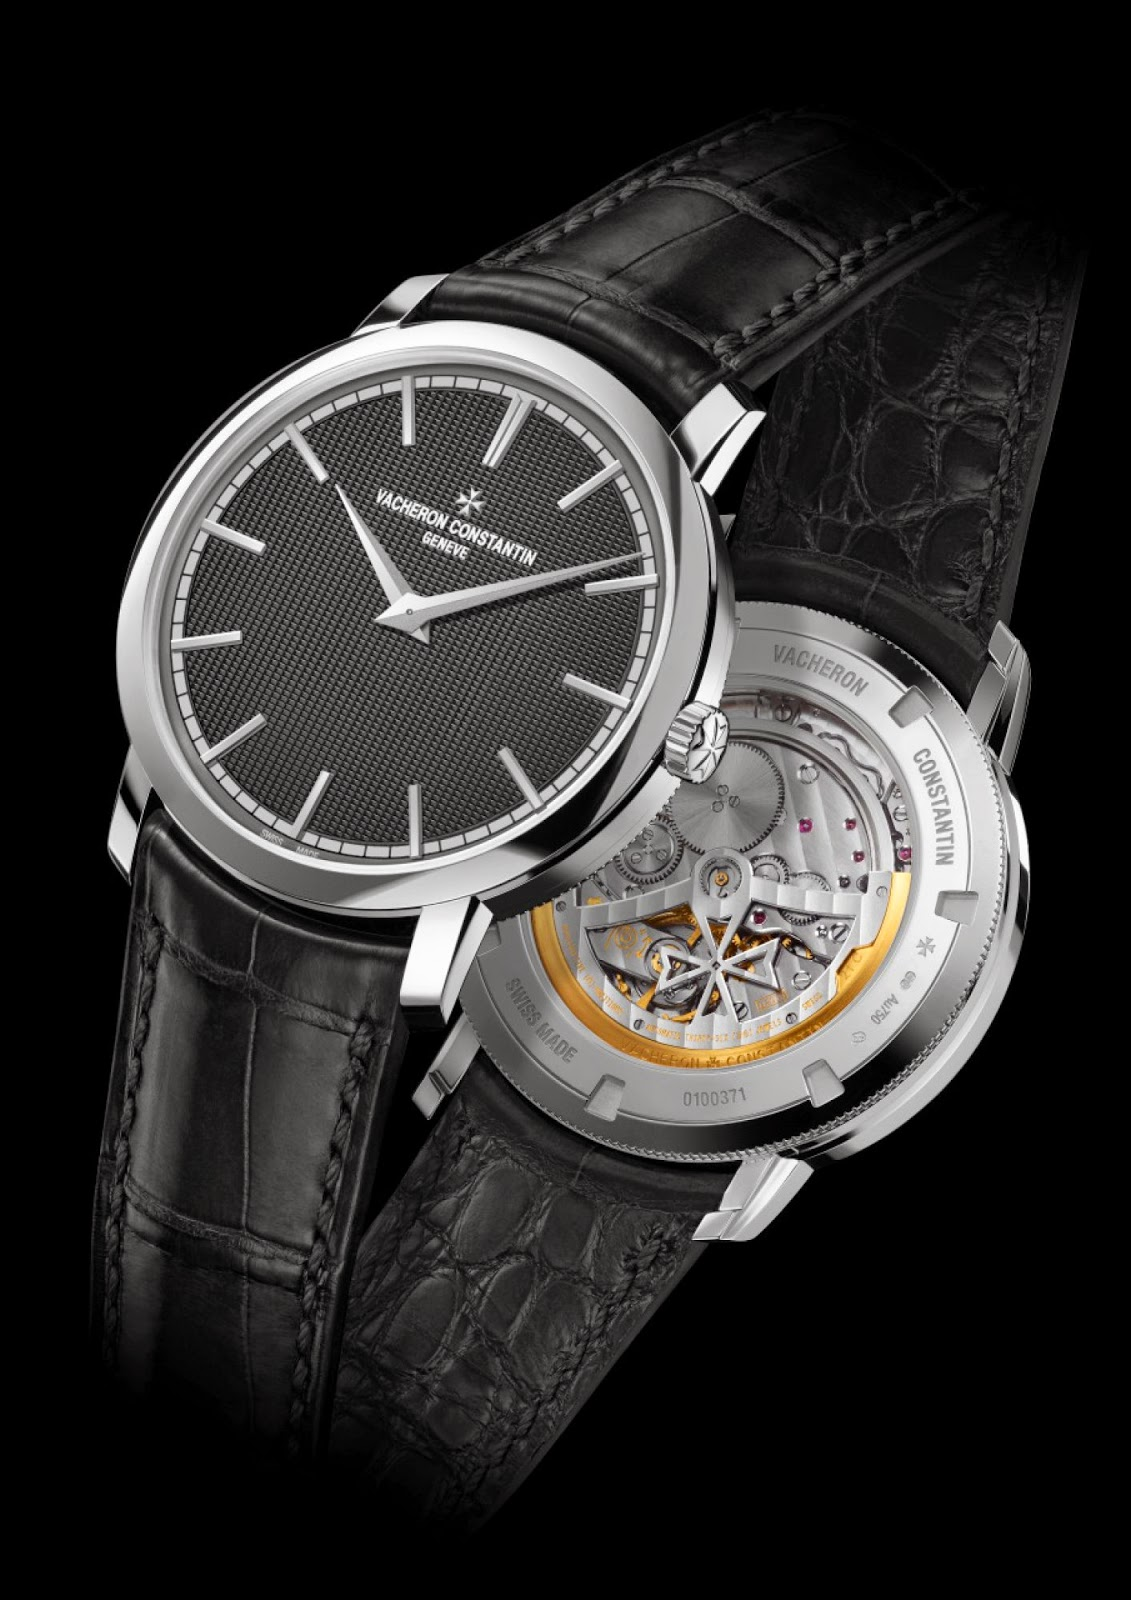 Vacheron Constantin Traditionnelle watch replica